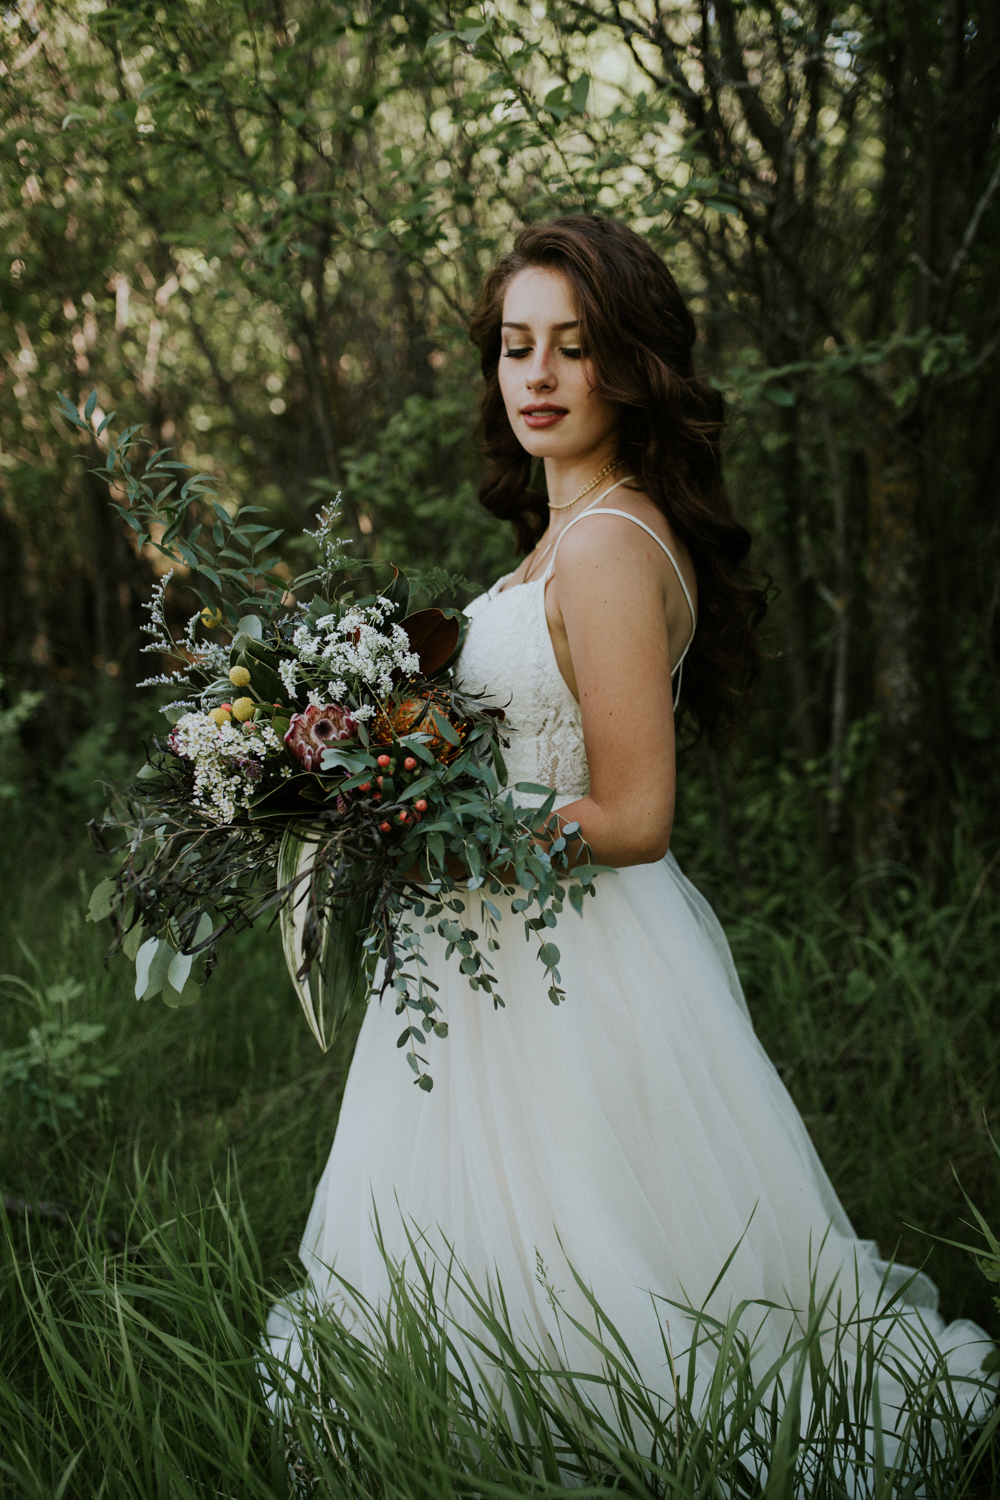 styled-colourful-wedding-photoshoot-bride-bhldn-floral-design-alberta-portrait-40.jpg